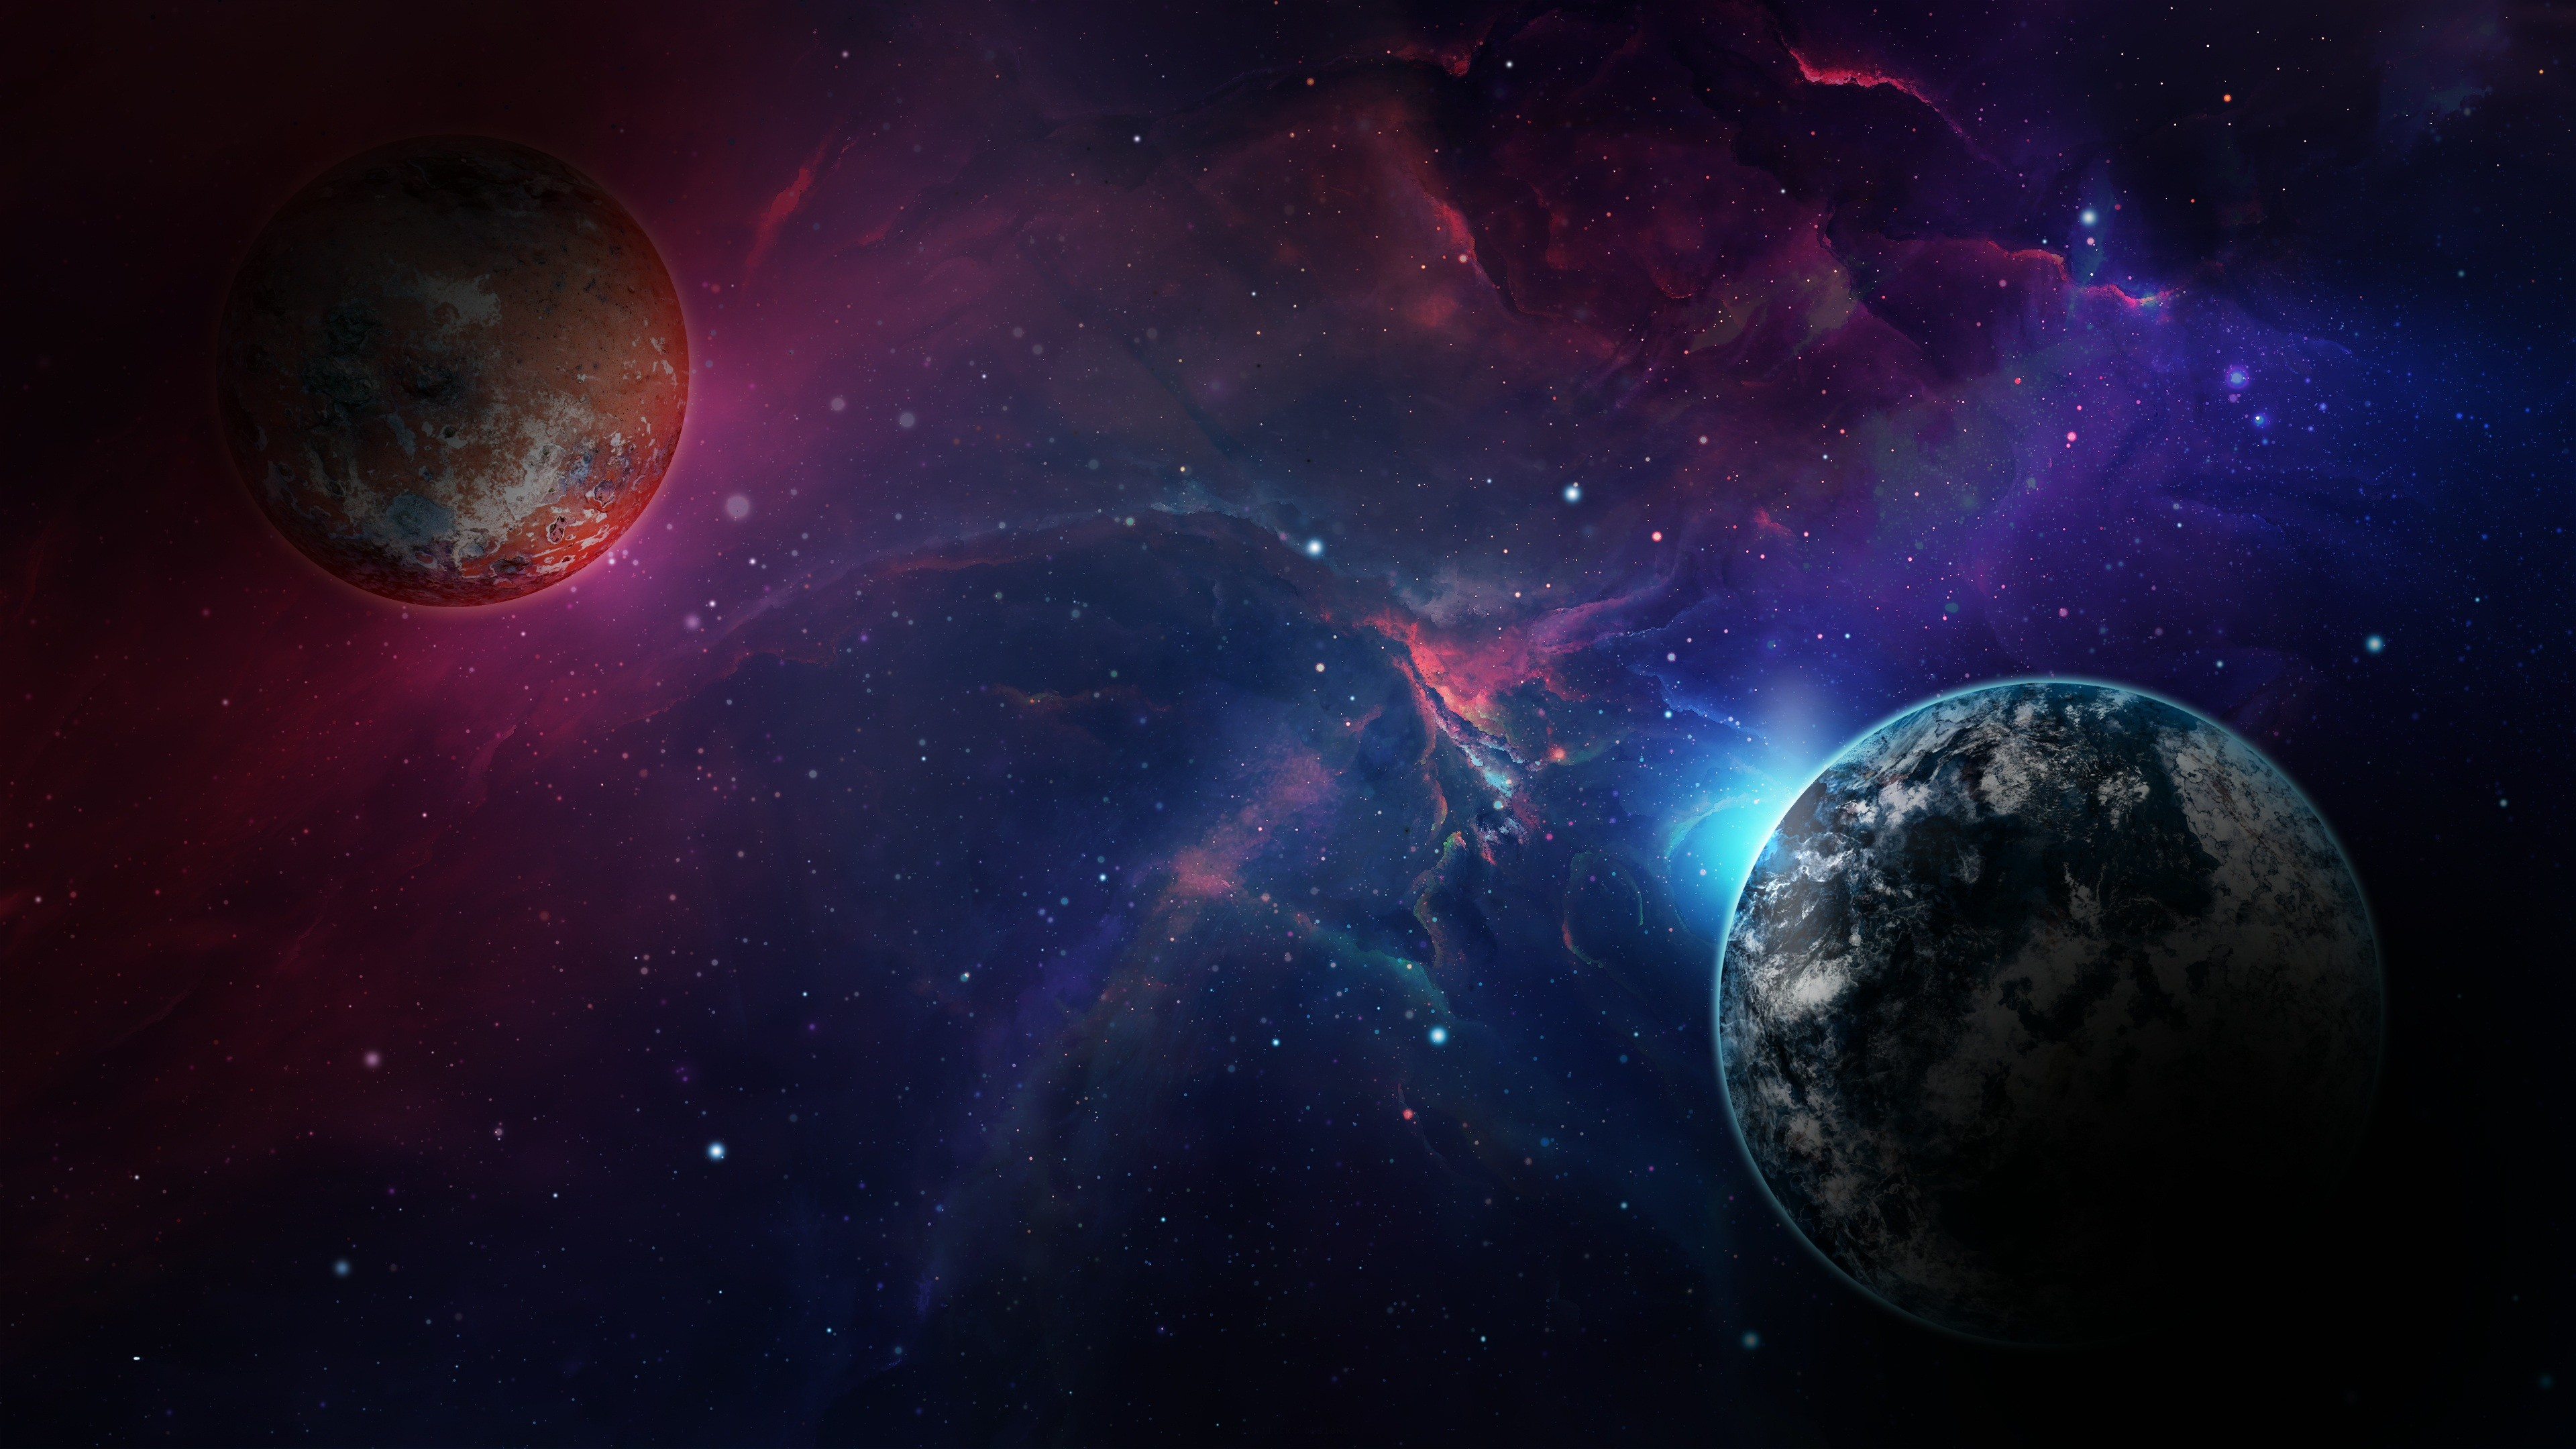 Planets In Space Wallpaper 4k Ultra Hd Id 3897